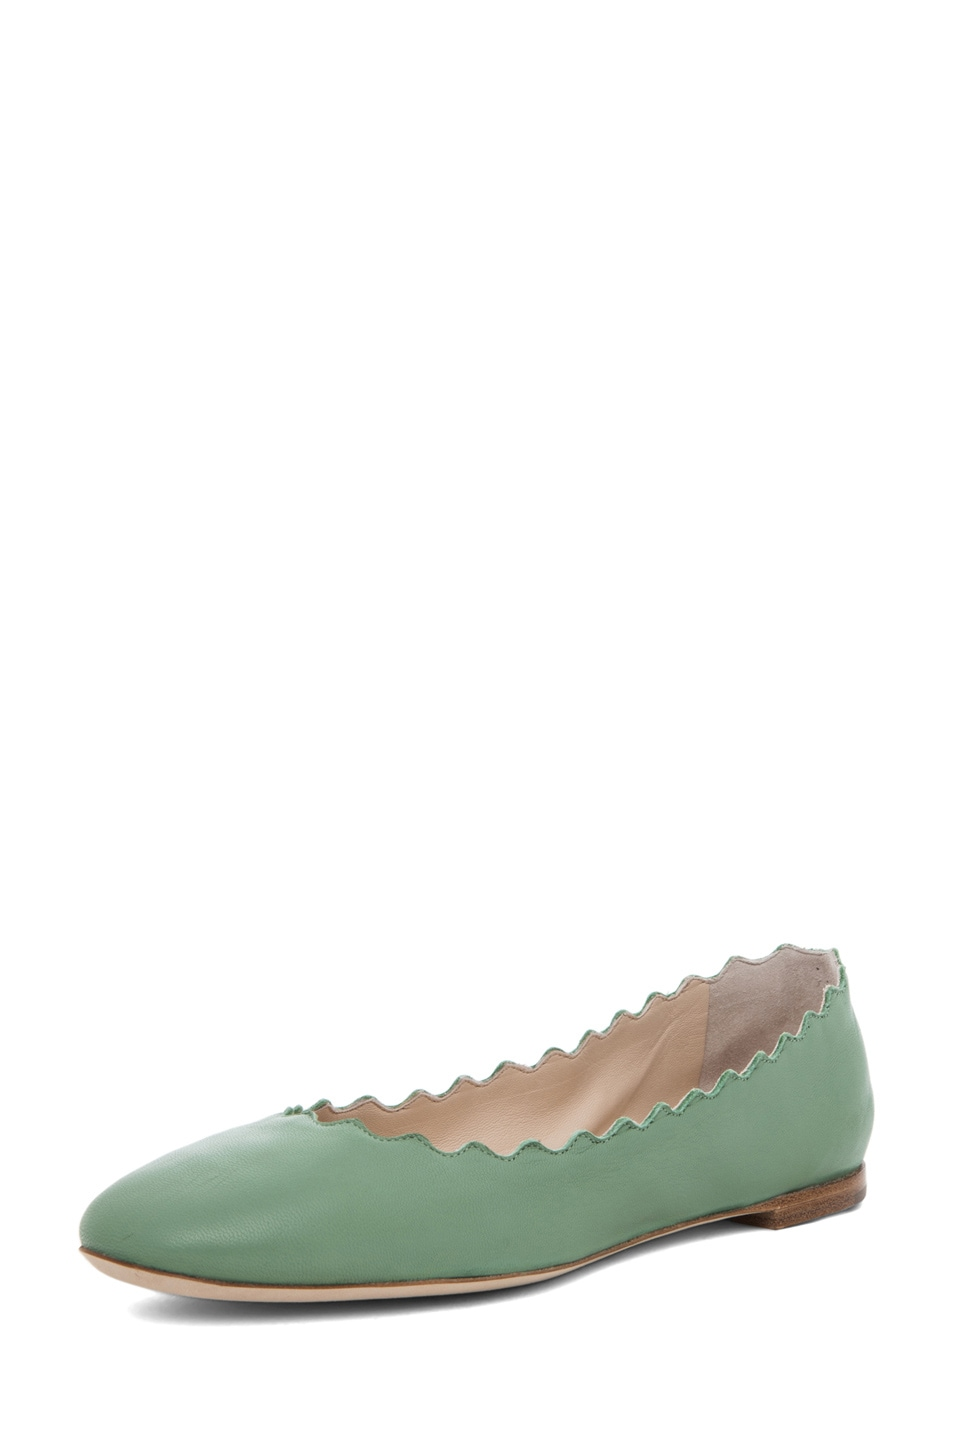 Image 2 of Chloe Lauren Scalloped Flat in Mint